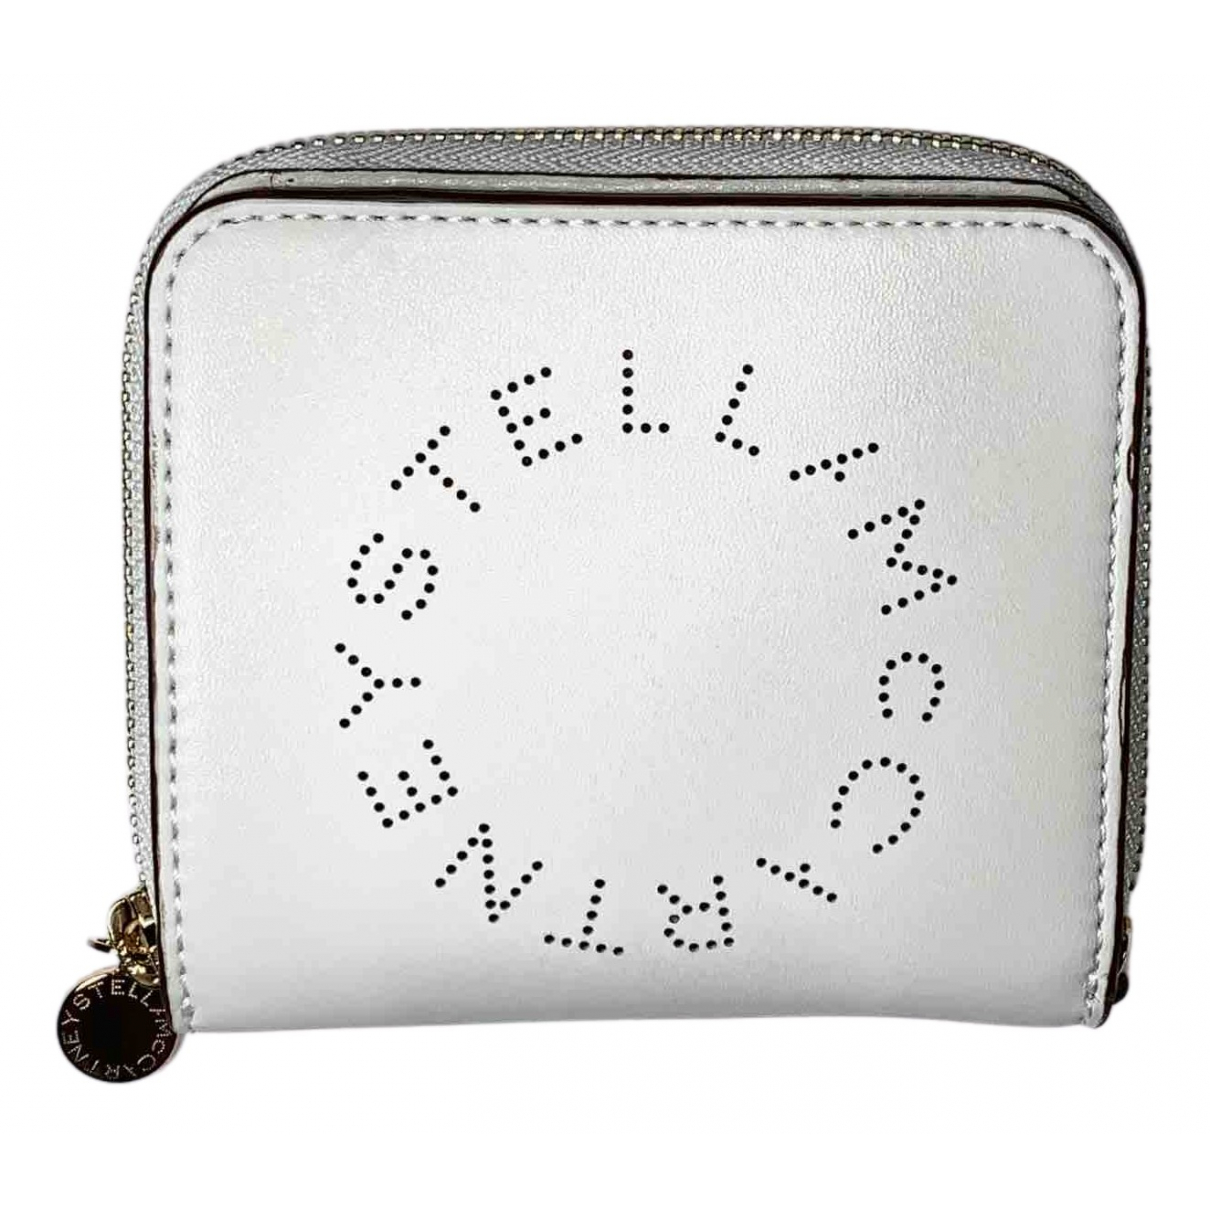 Cartera de Lona Stella Mccartney